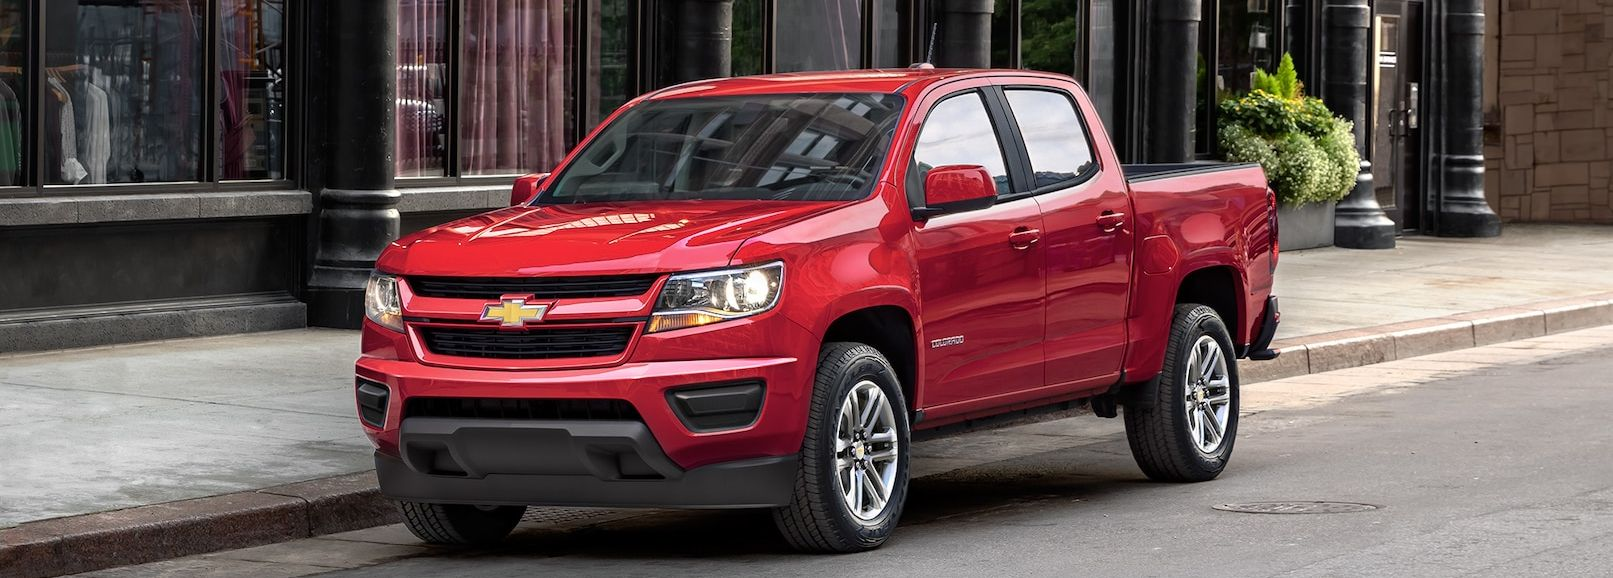 2019 Chevrolet Colorado for Sale near Oceanside, CA